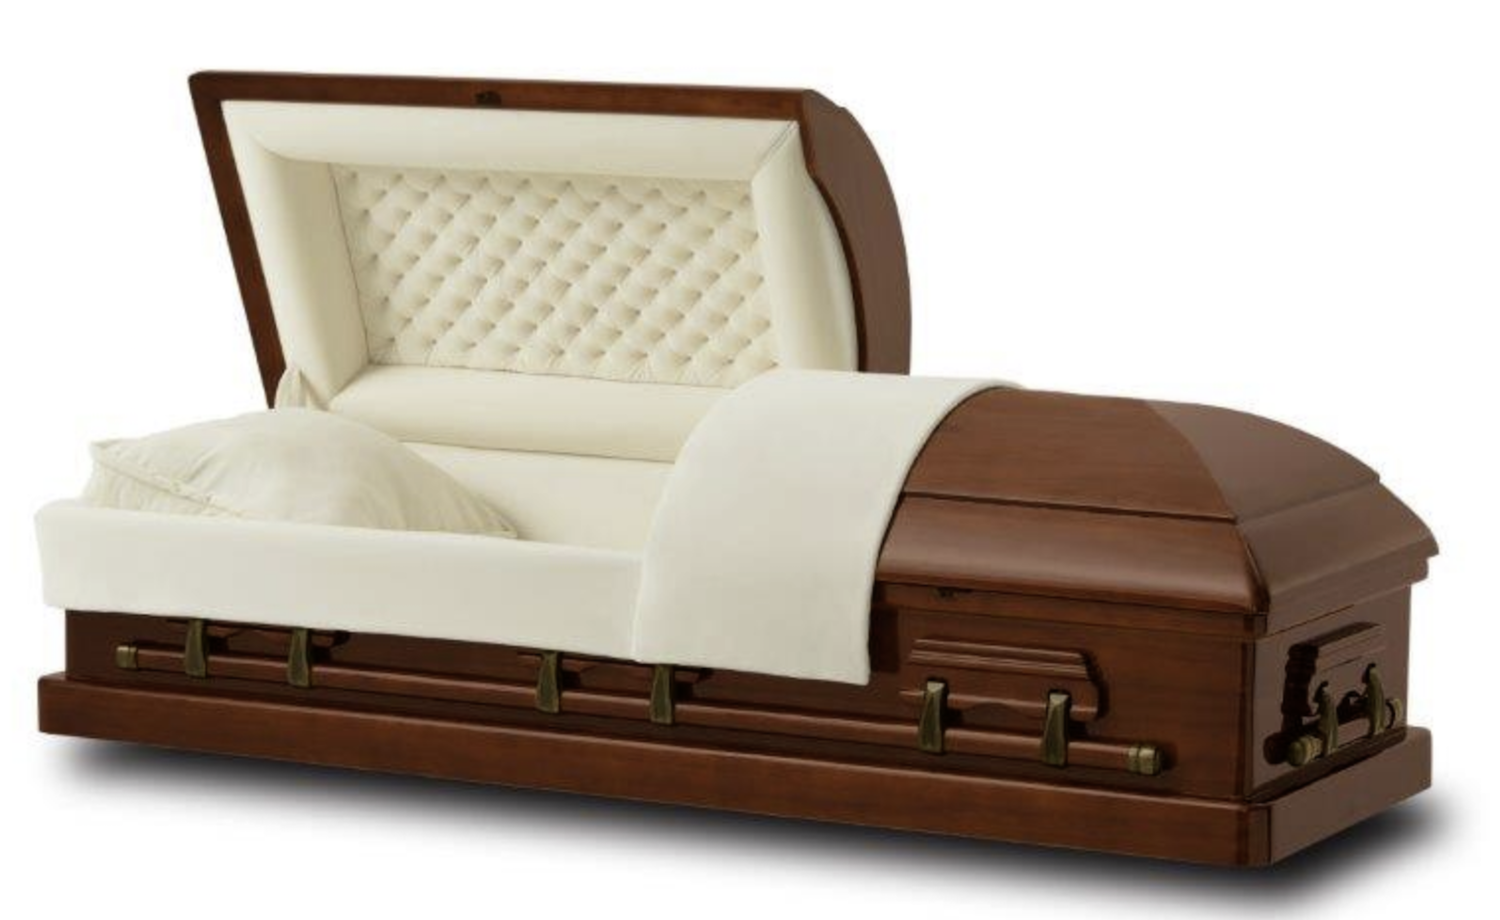 NJ Oversized Coffins